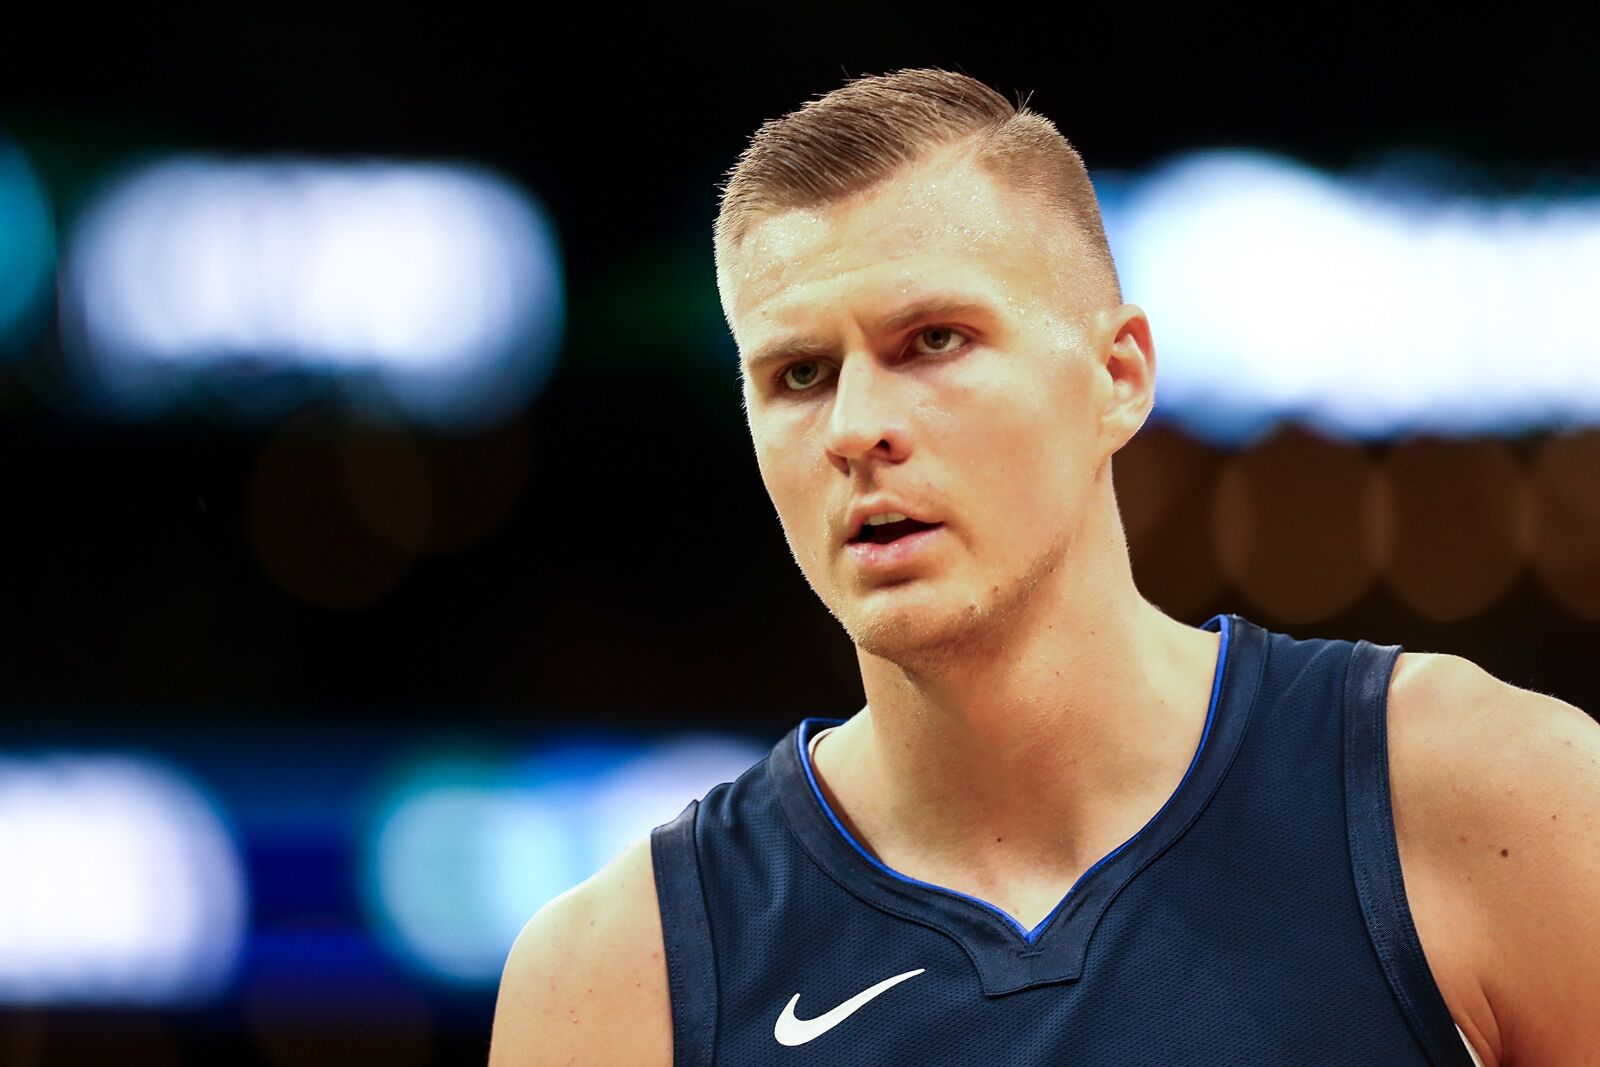 How Kristaps Porzingis can take advantage of Luka's absence from Dallas Mavericks